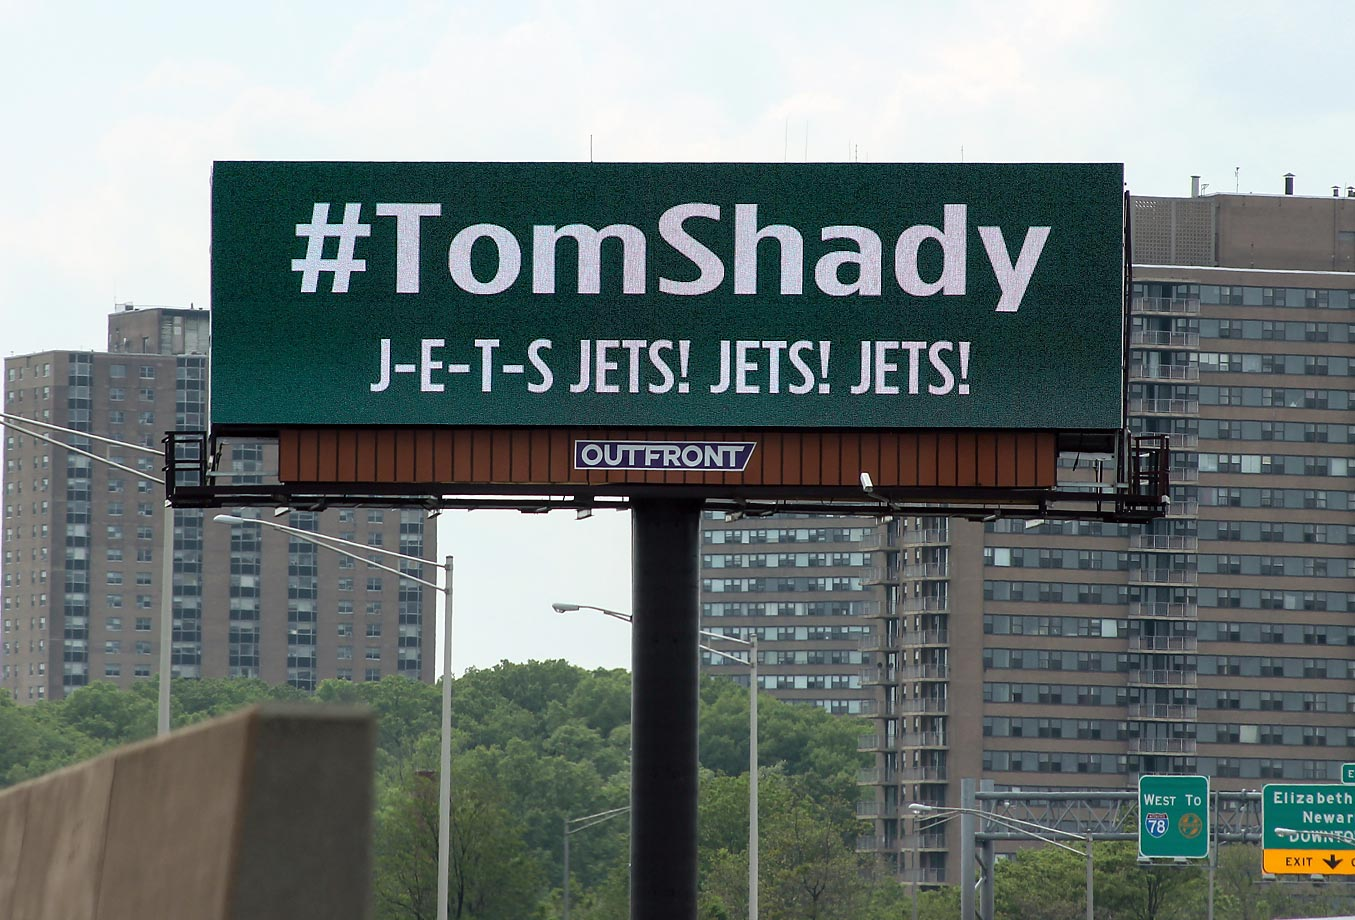 A #TomShady billboard on Route 78 in Newark, N.J. Some New York Jets fans bought 12 billboards in the New York-New Jersey area to poke fun at Tom Brady, who recently received a four-game suspension.